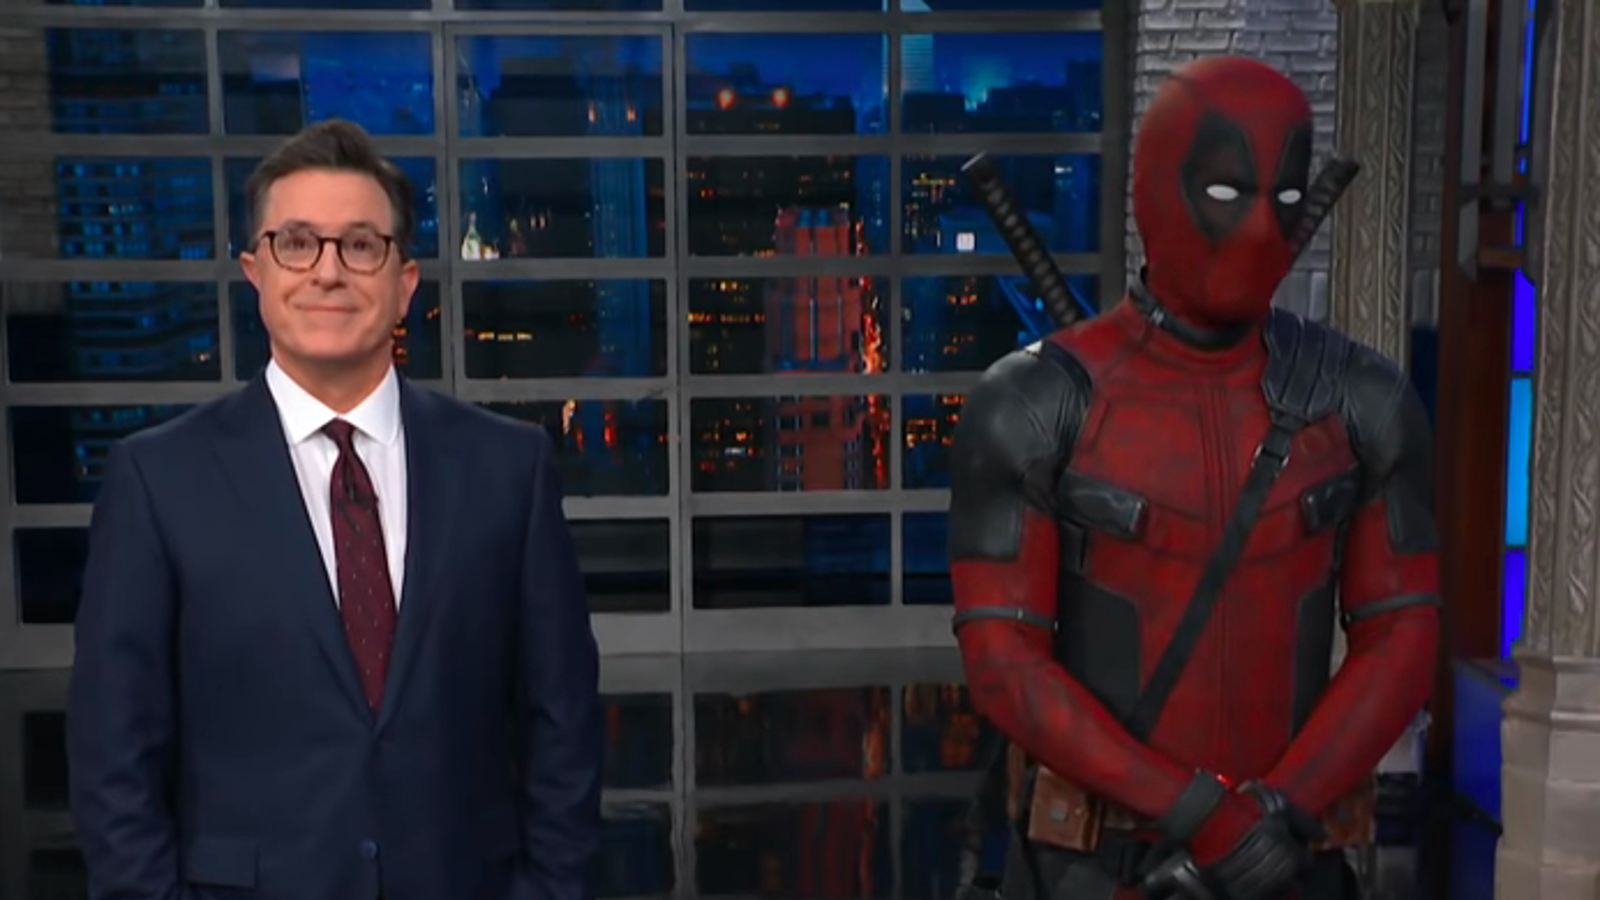 Deadpool leaps into The Late Show's continuity to take over Stephen Colbert's Trump jokes